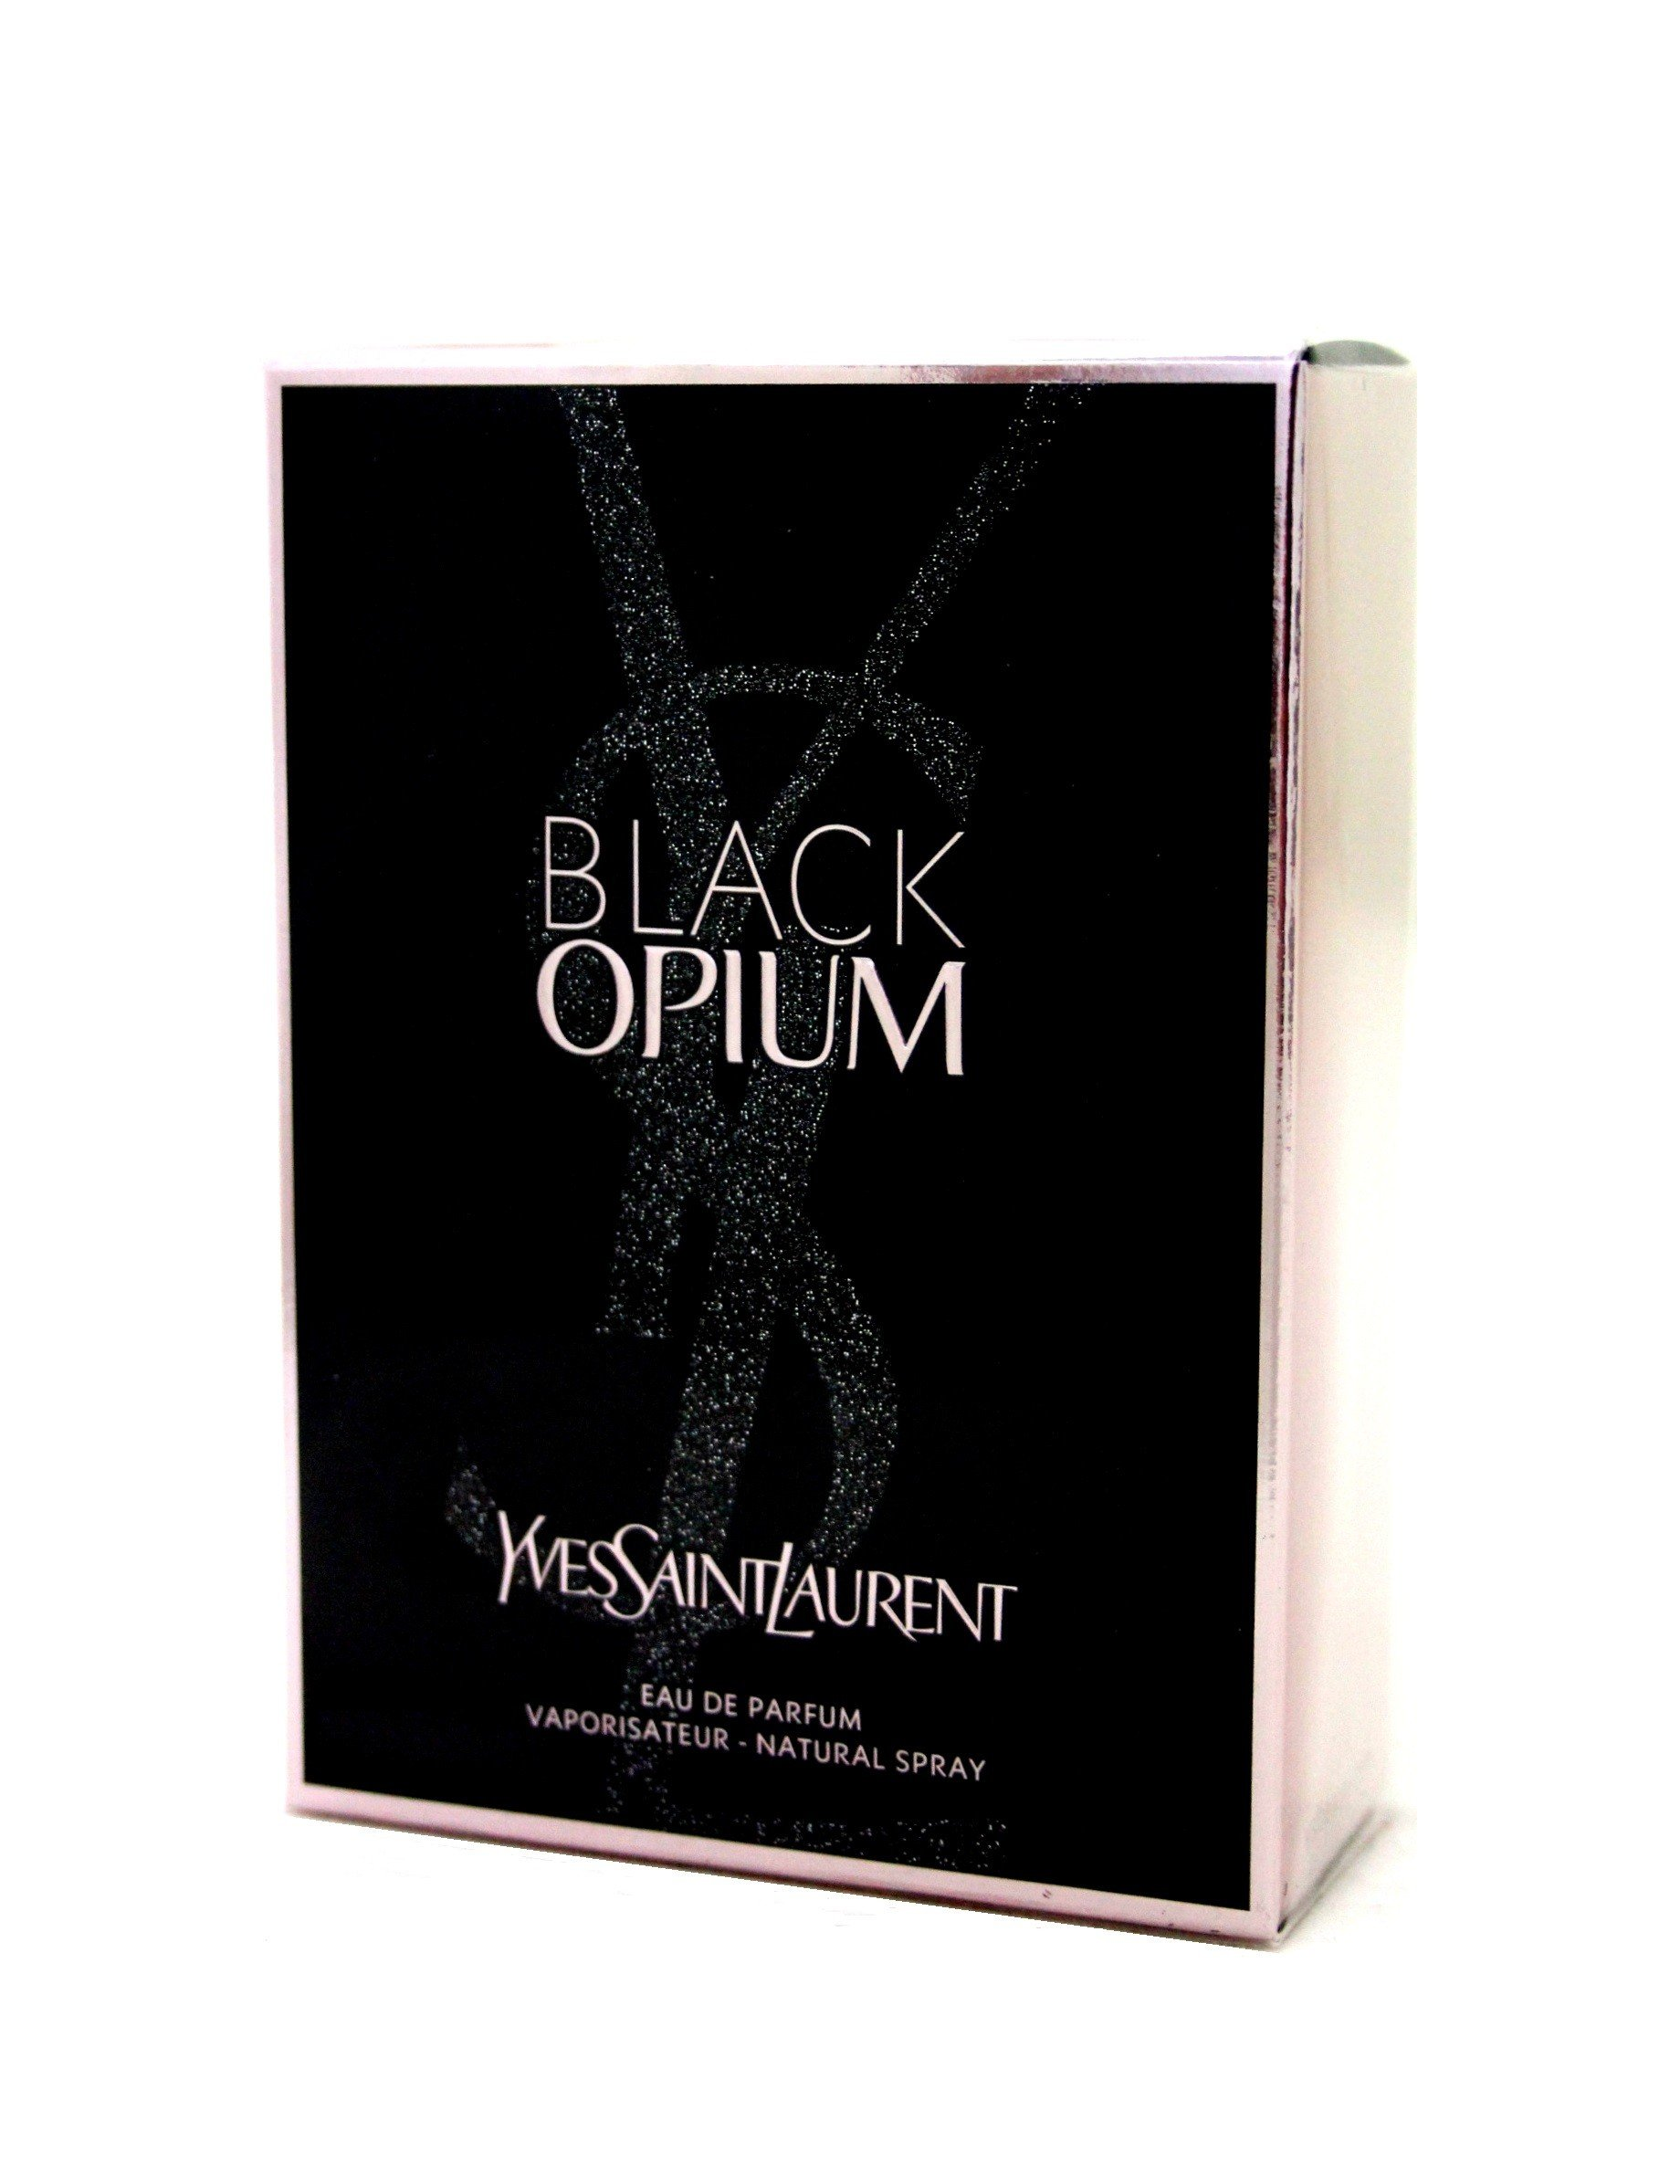 yves saint laurent parfums und d fte online g nstig bestellen. Black Bedroom Furniture Sets. Home Design Ideas